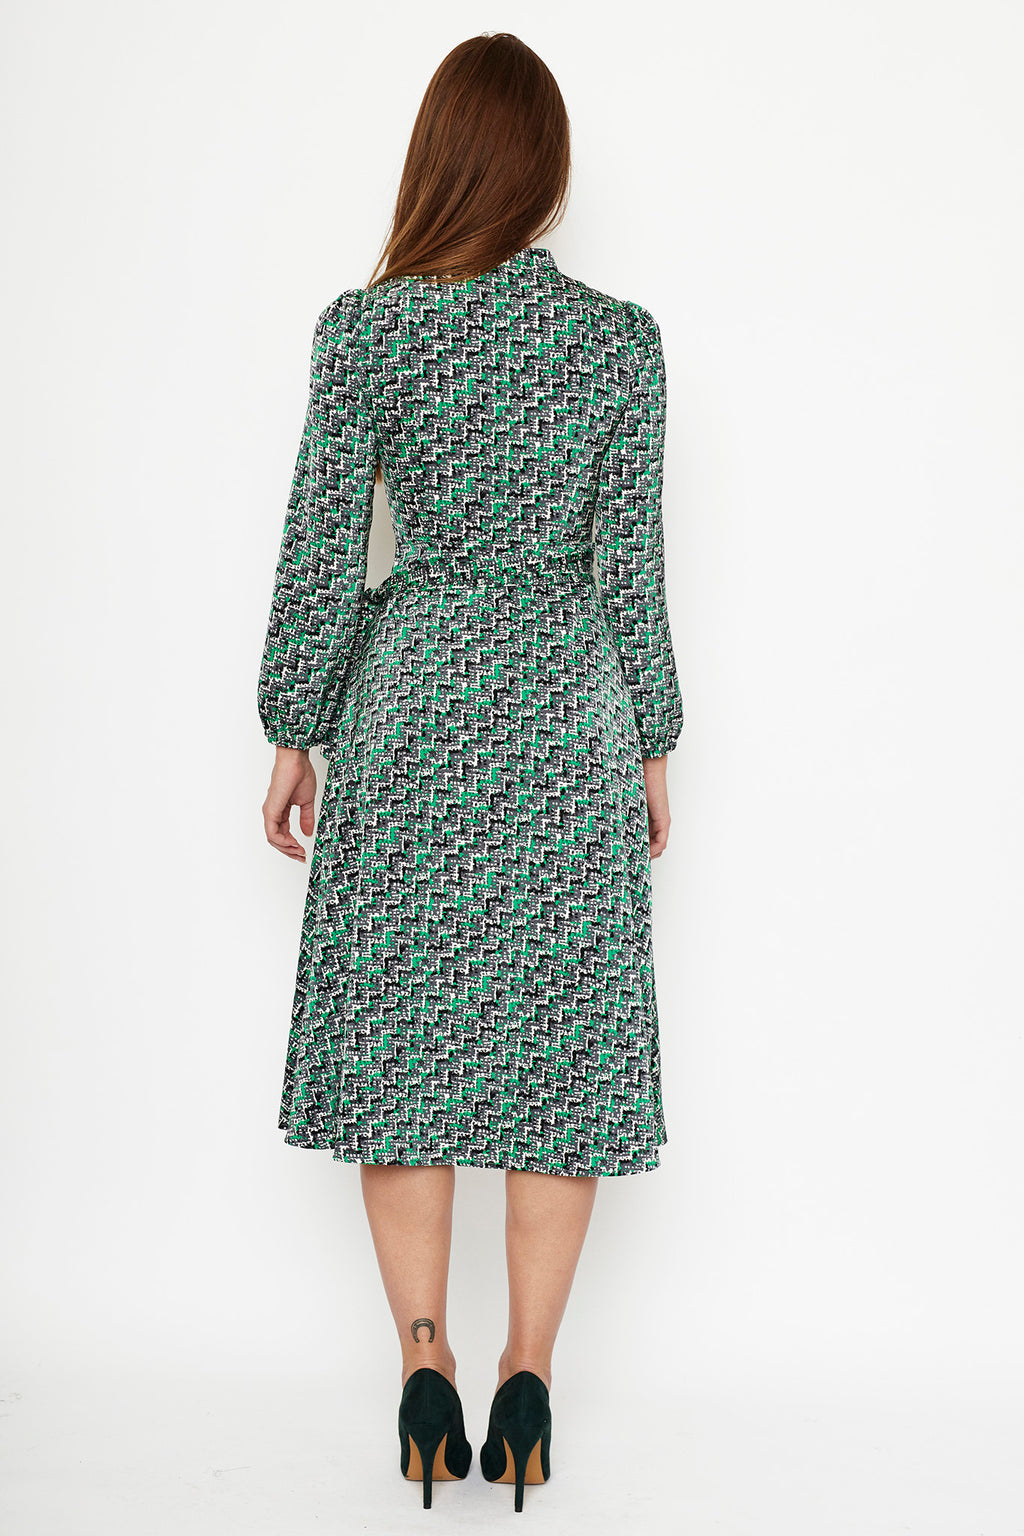 1 VESTIDO WRAP DRESS EN PUNTO  ESTAMPADO ZIG ZAG,VERDE